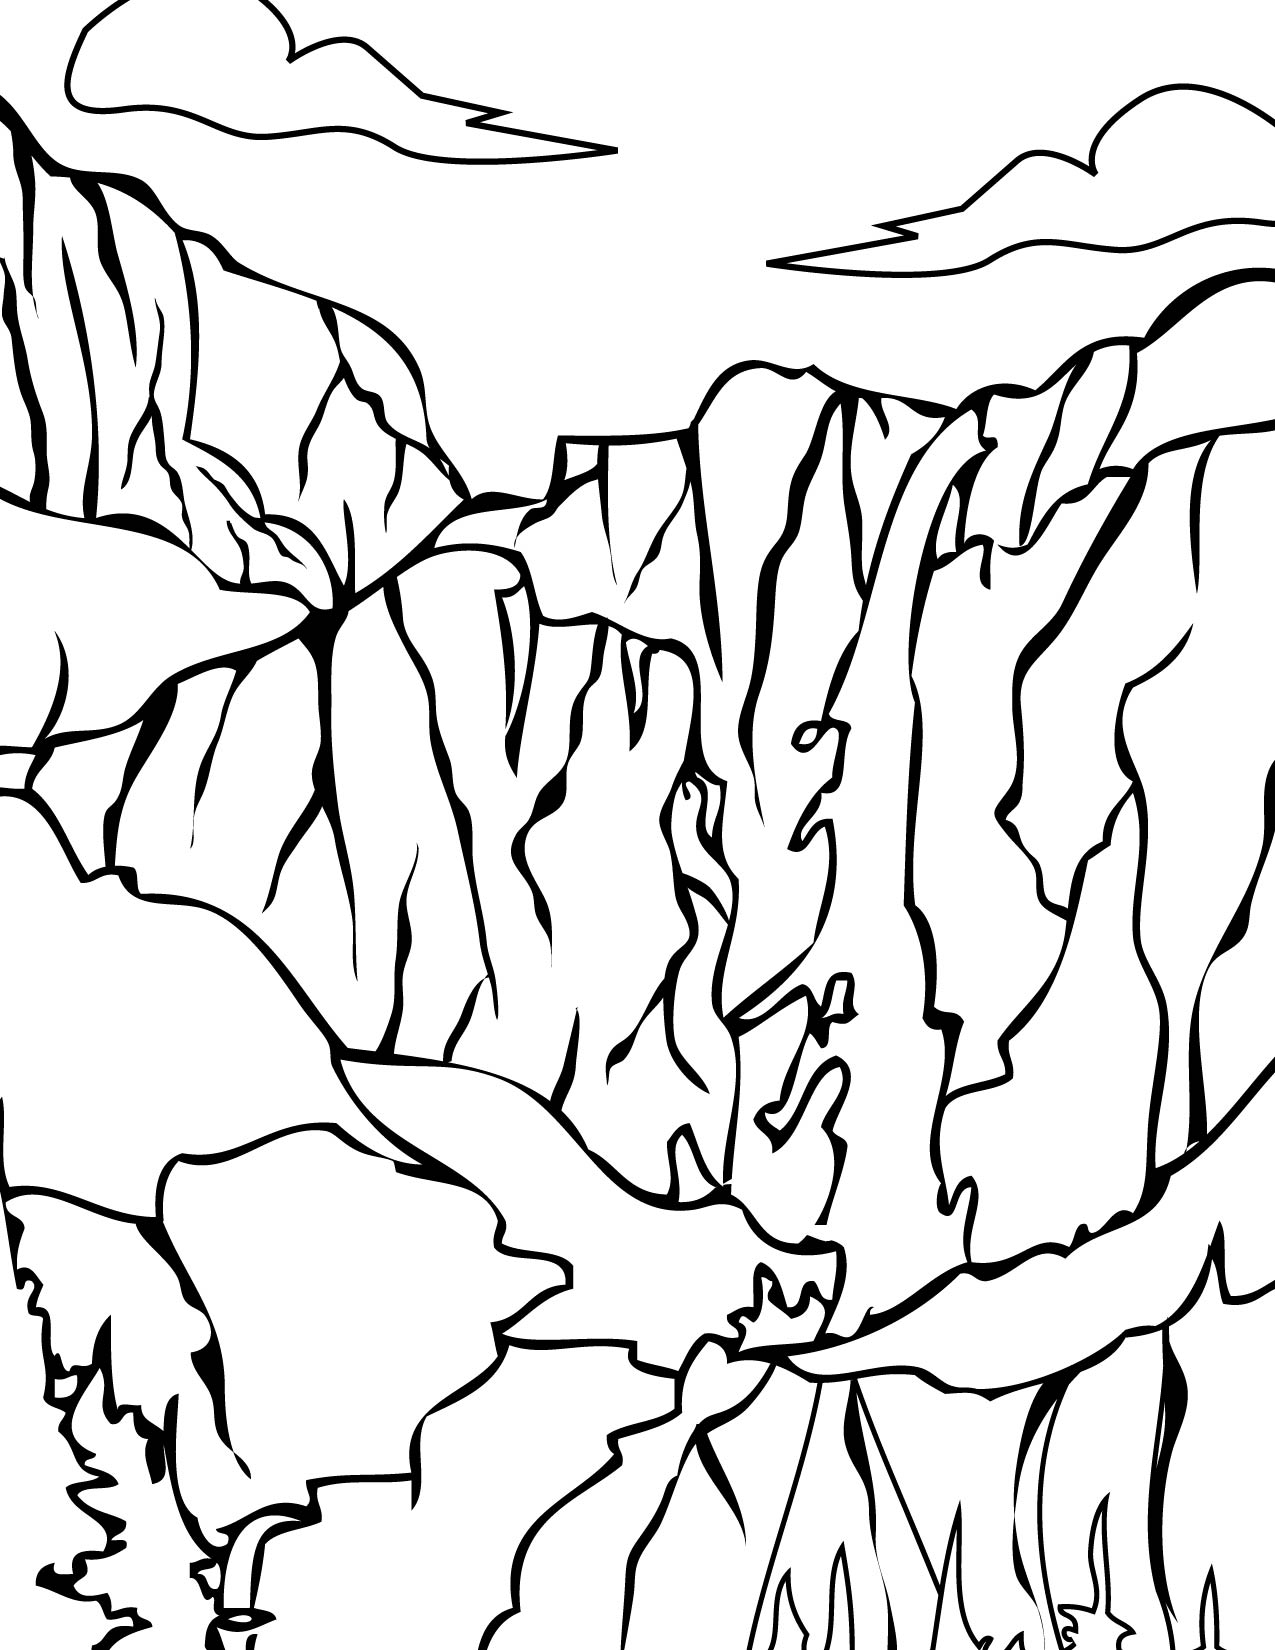 Download Yosemite National Park Coloring For Free